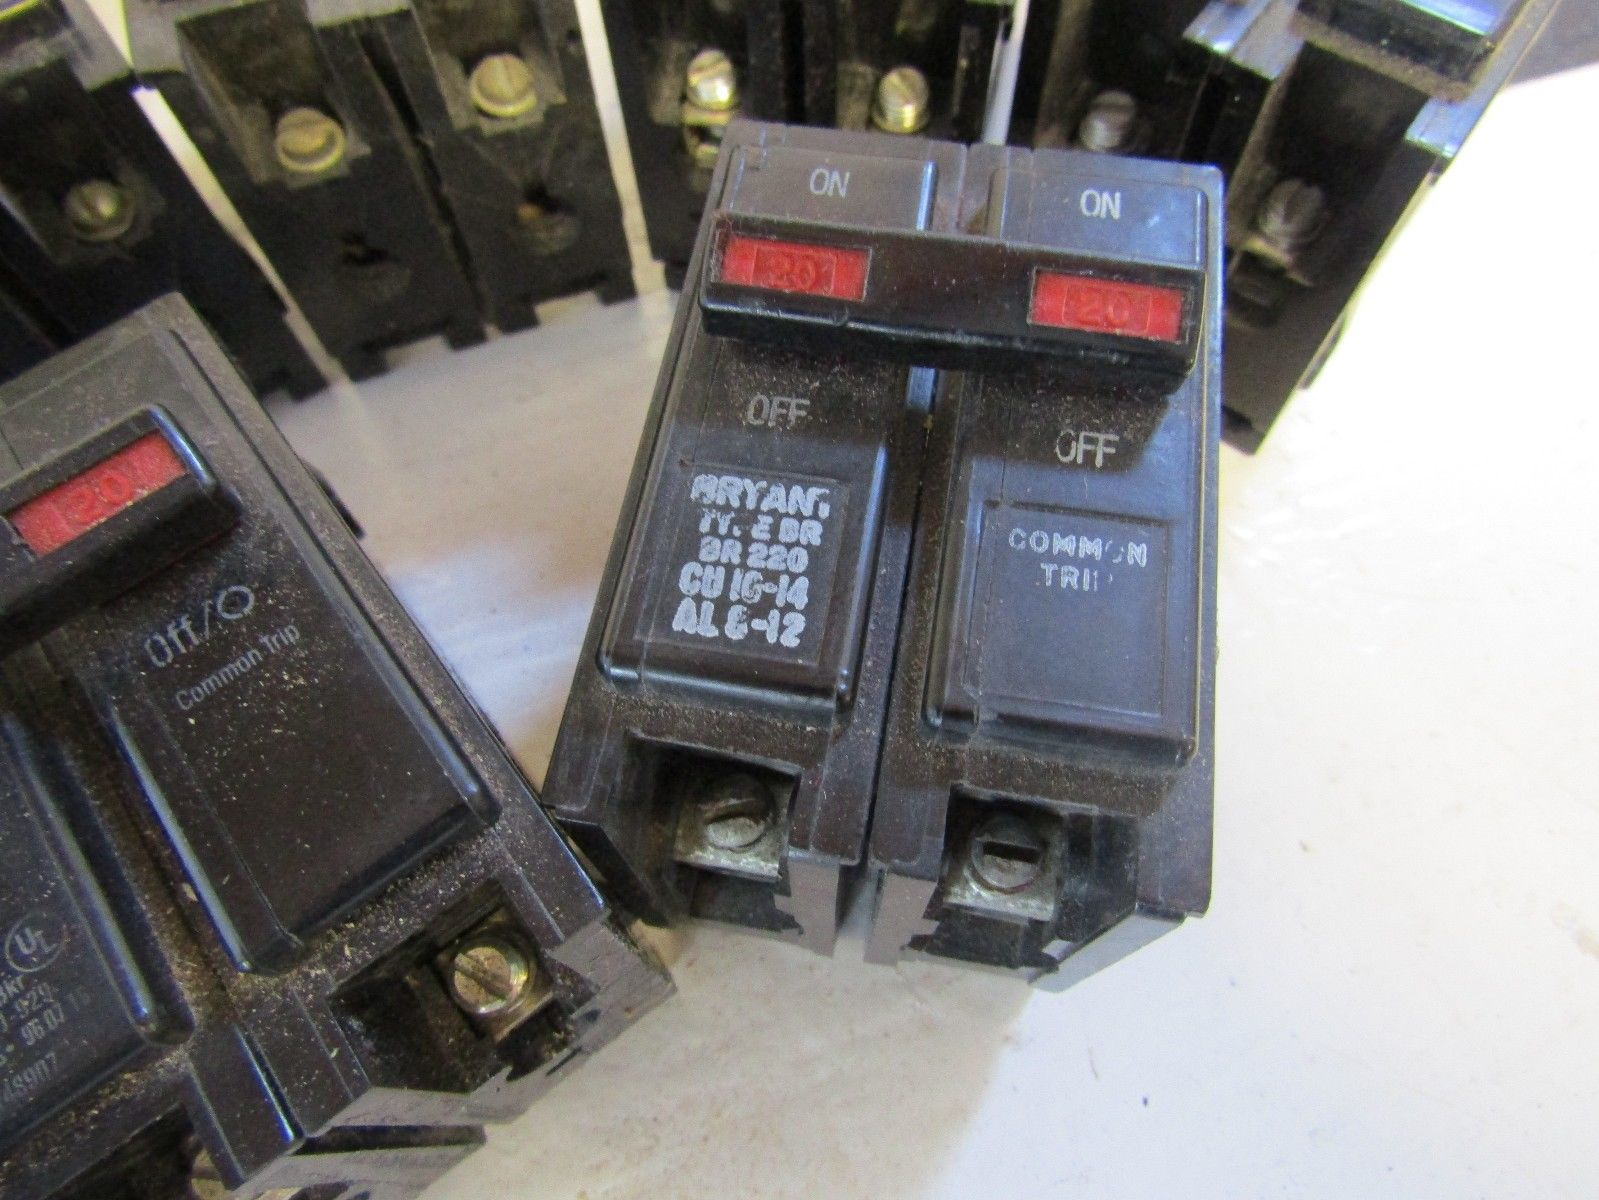 Westinghouse 20 Amp 2 Pole Circuit Breaker Br220 Ua Auto Eaton Cutler Hammer Bab1020 Quicklagr 120 Lot Of 10 Challenger Bryant